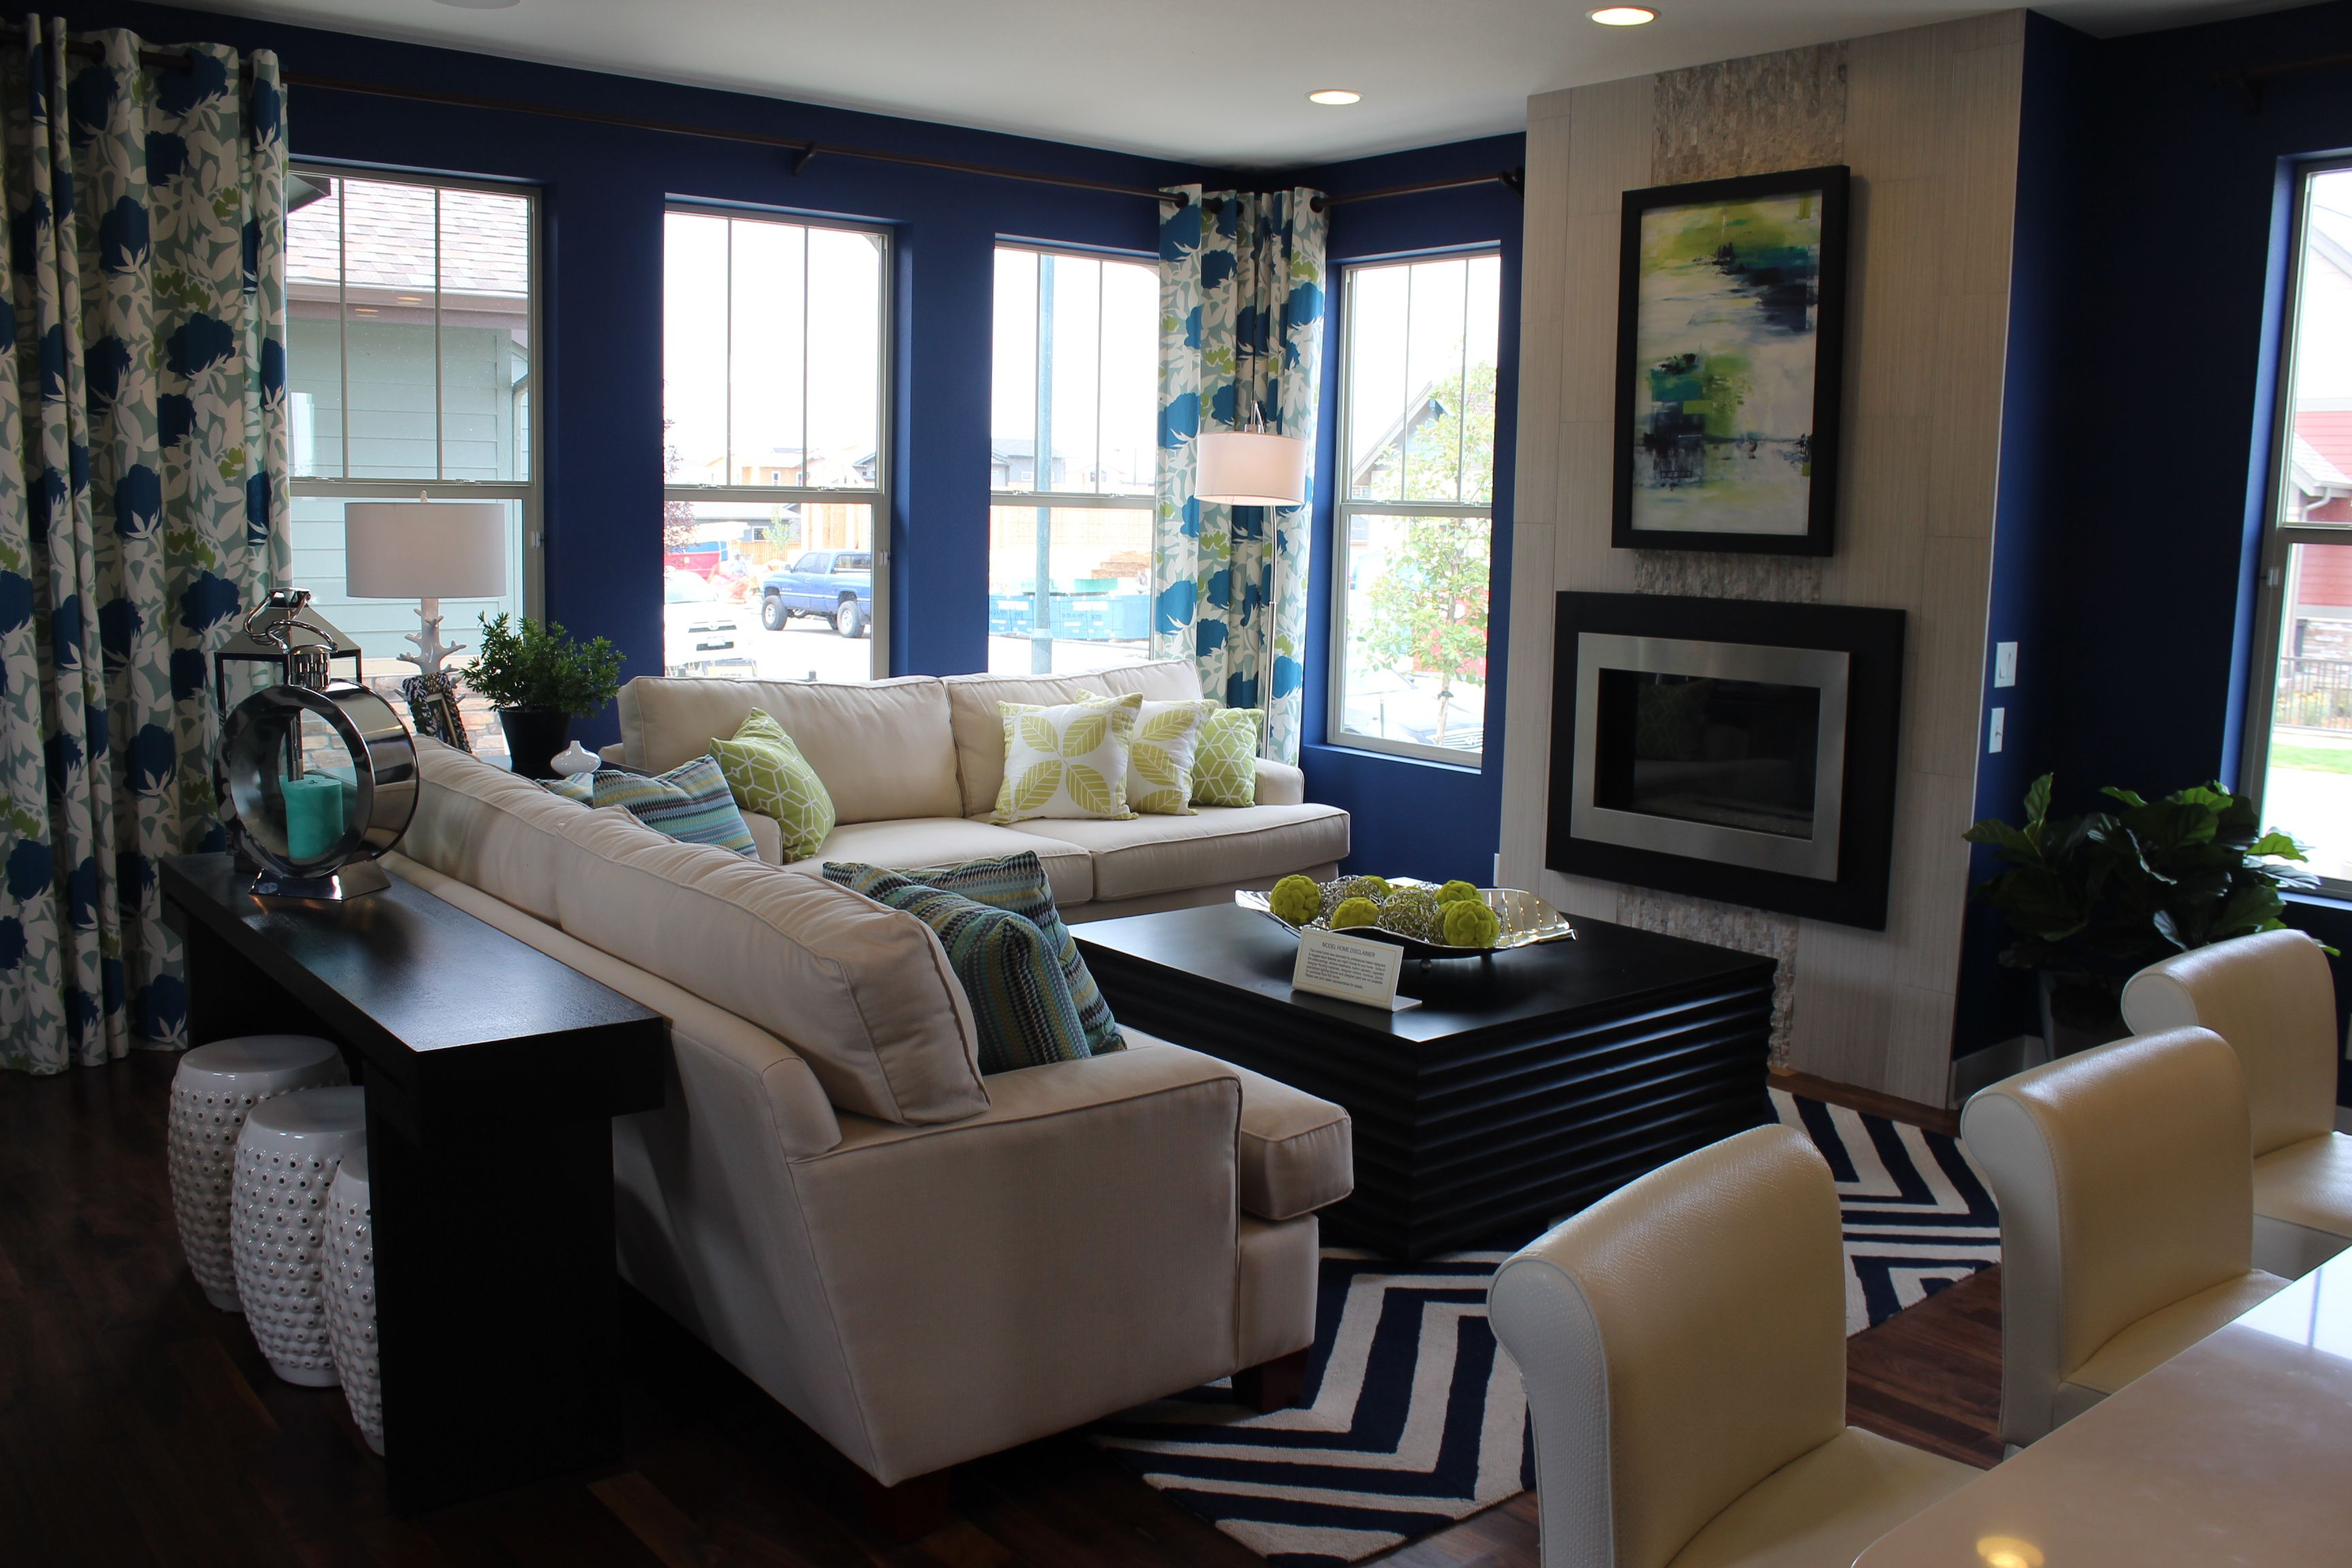 65 best KB Home images on Pinterest | New home essentials, New homes